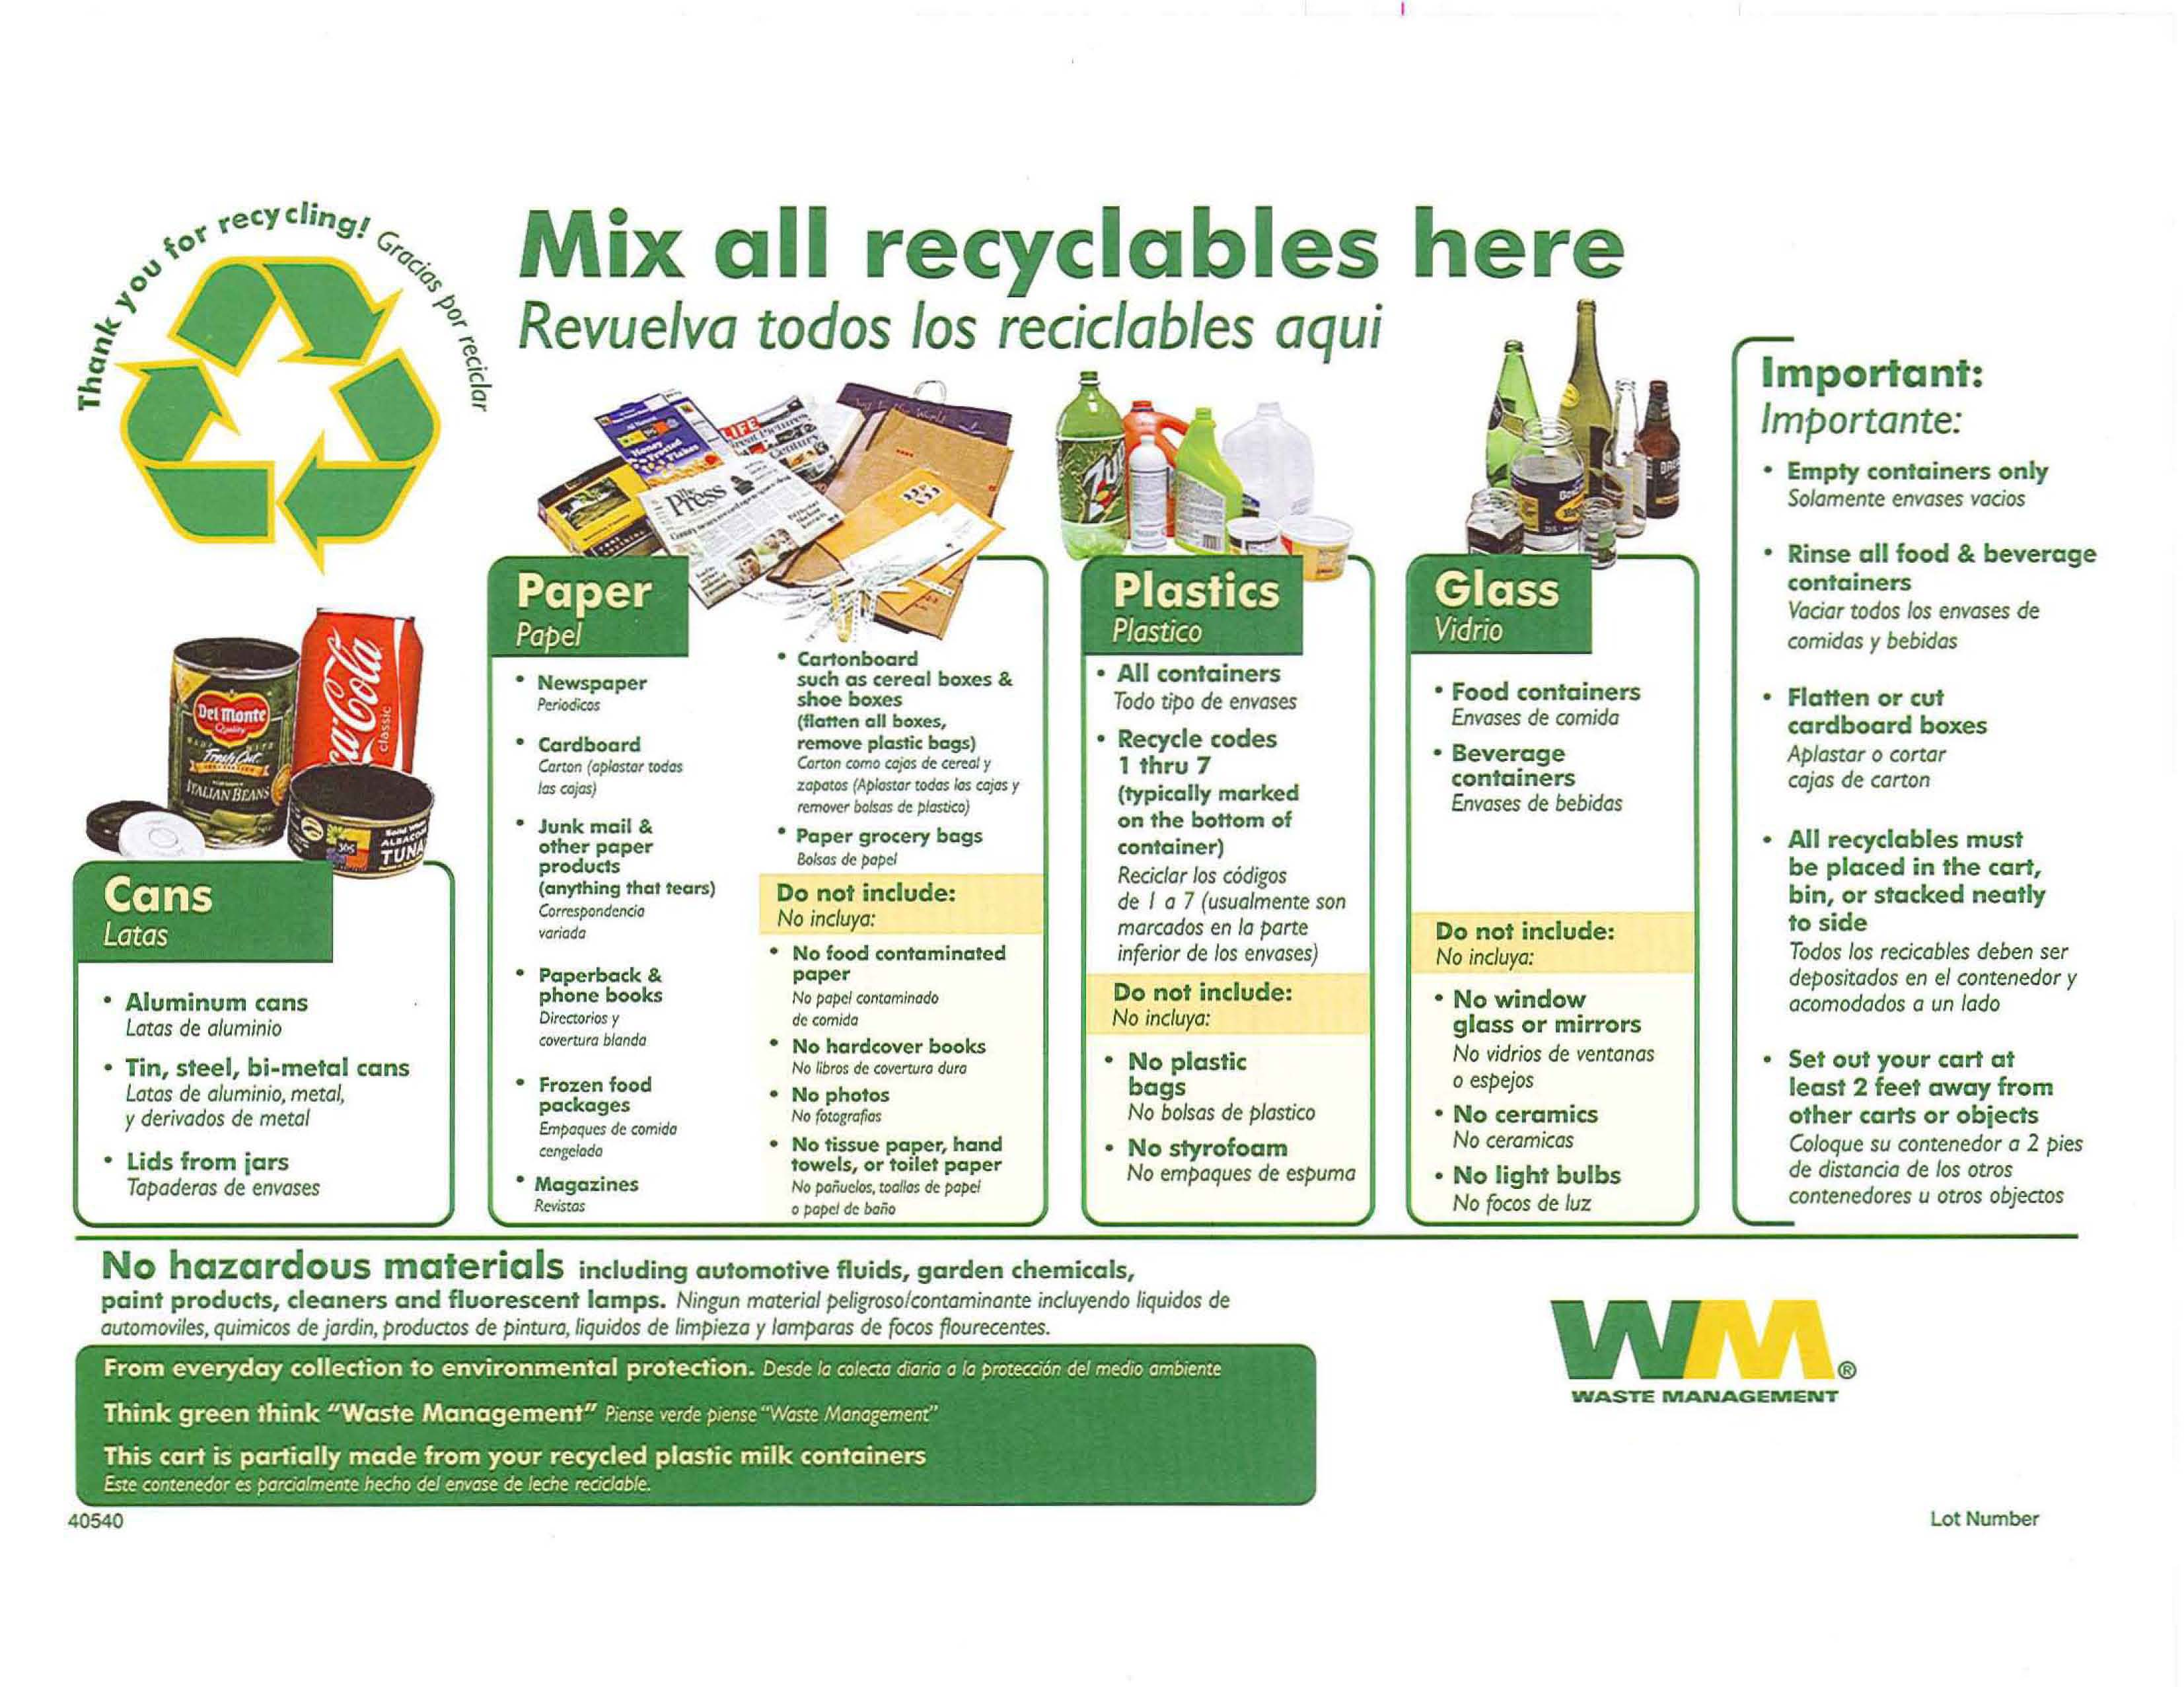 WASTE MANAGEMENT RECYCLABLES